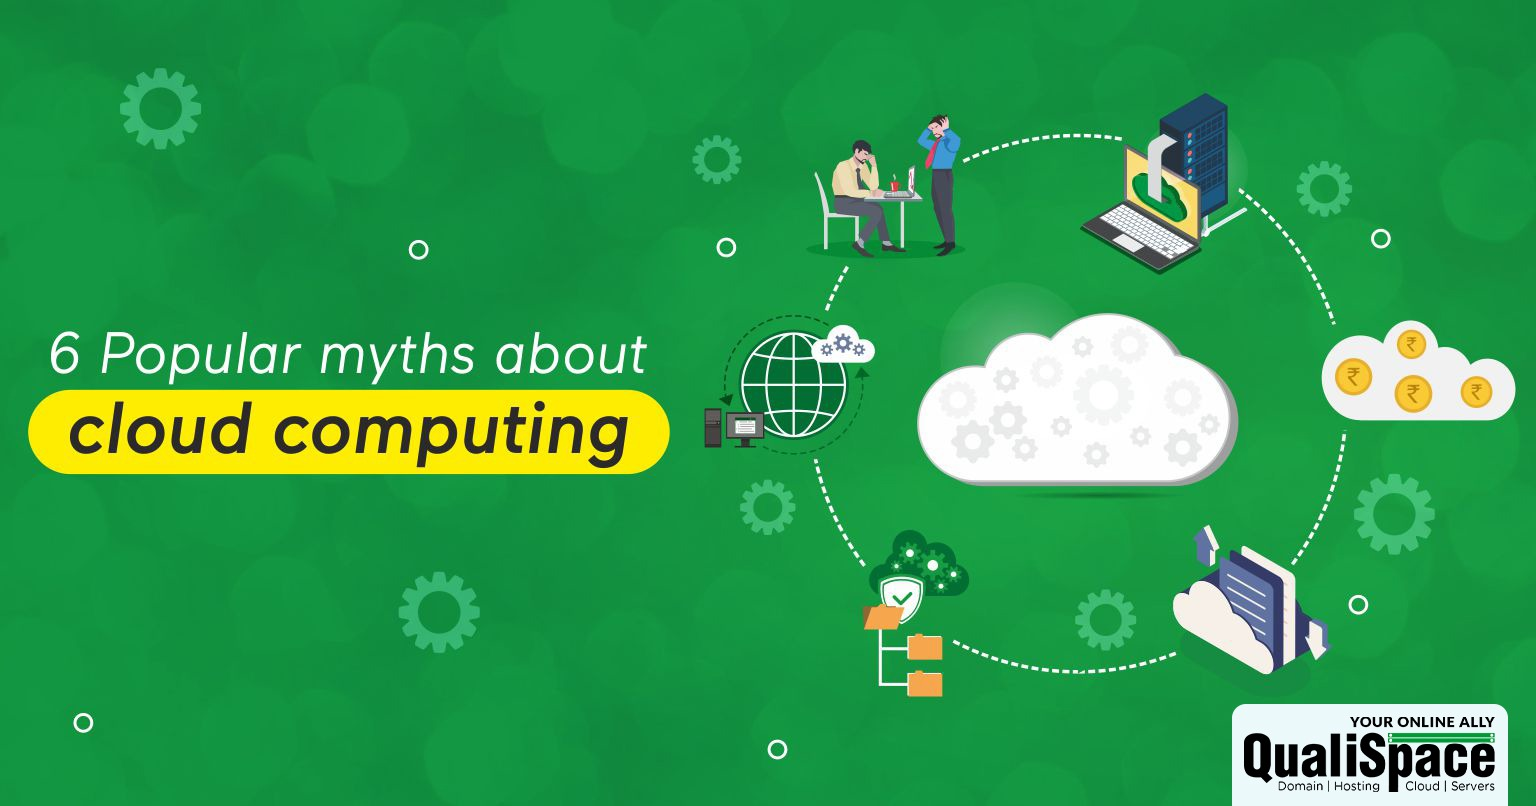 6 Popular myths about cloud computing.